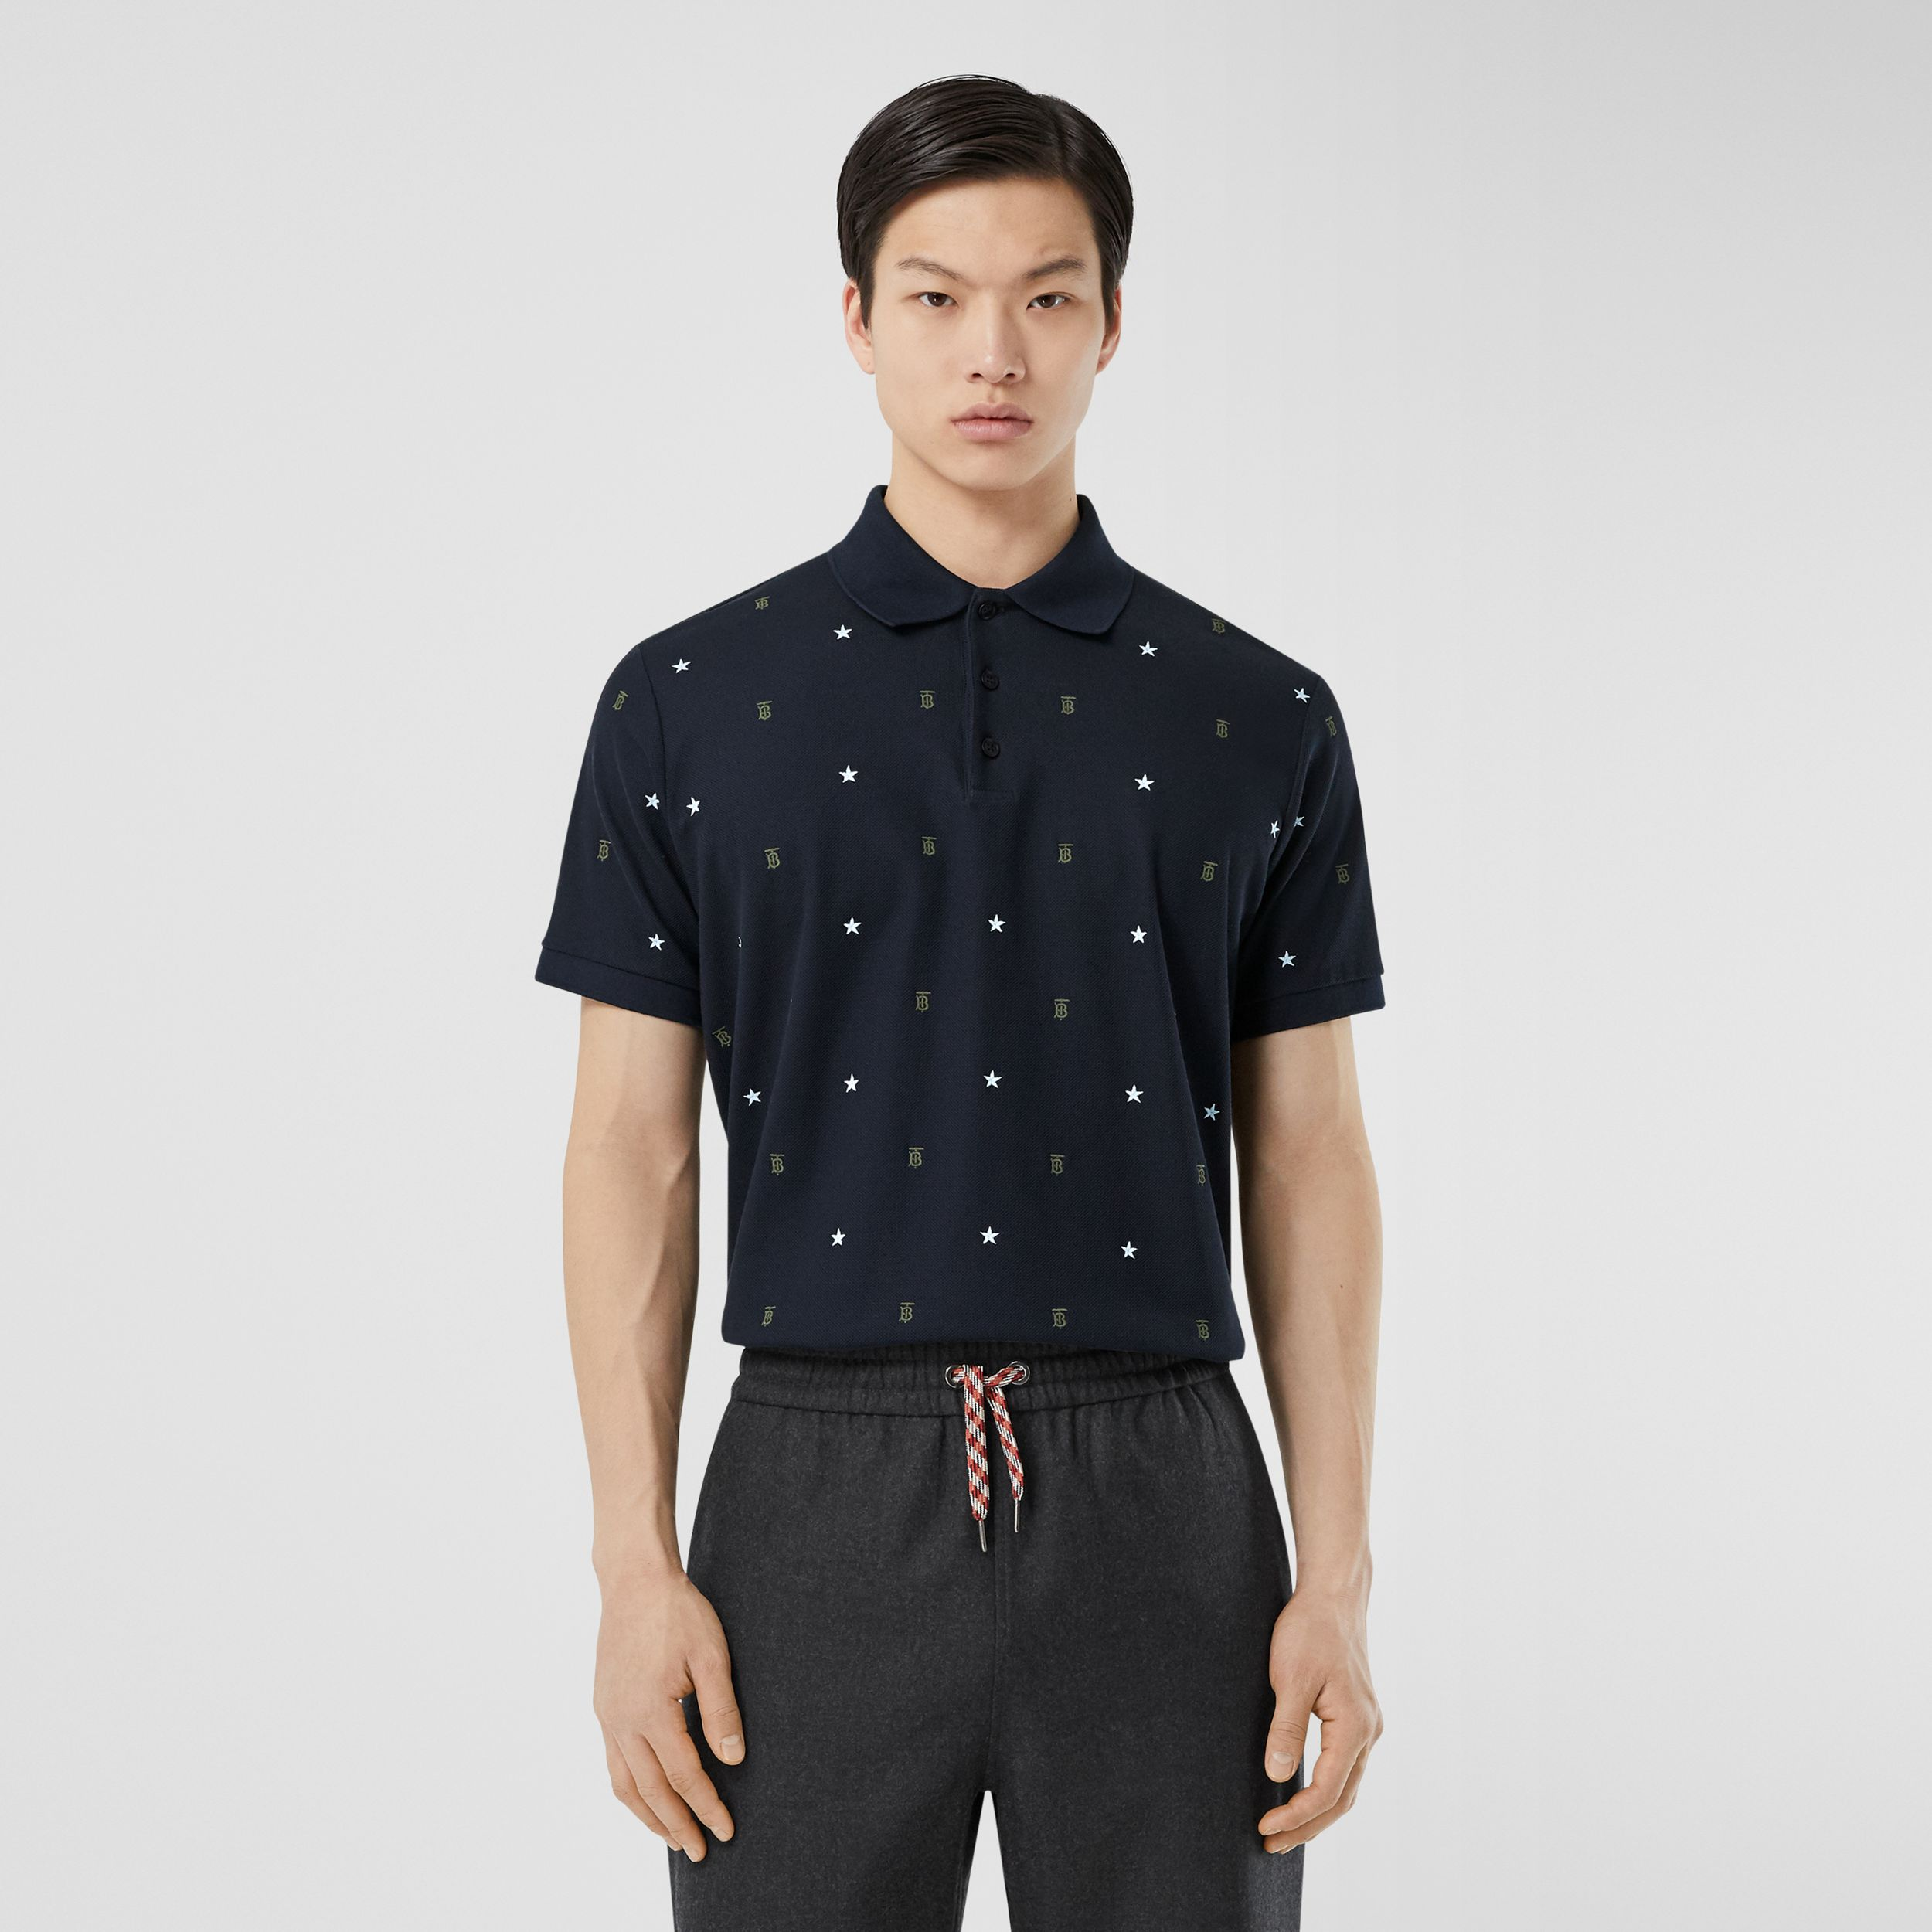 Star and Monogram Motif Cotton Piqué Polo Shirt in Navy - Men | Burberry - 1